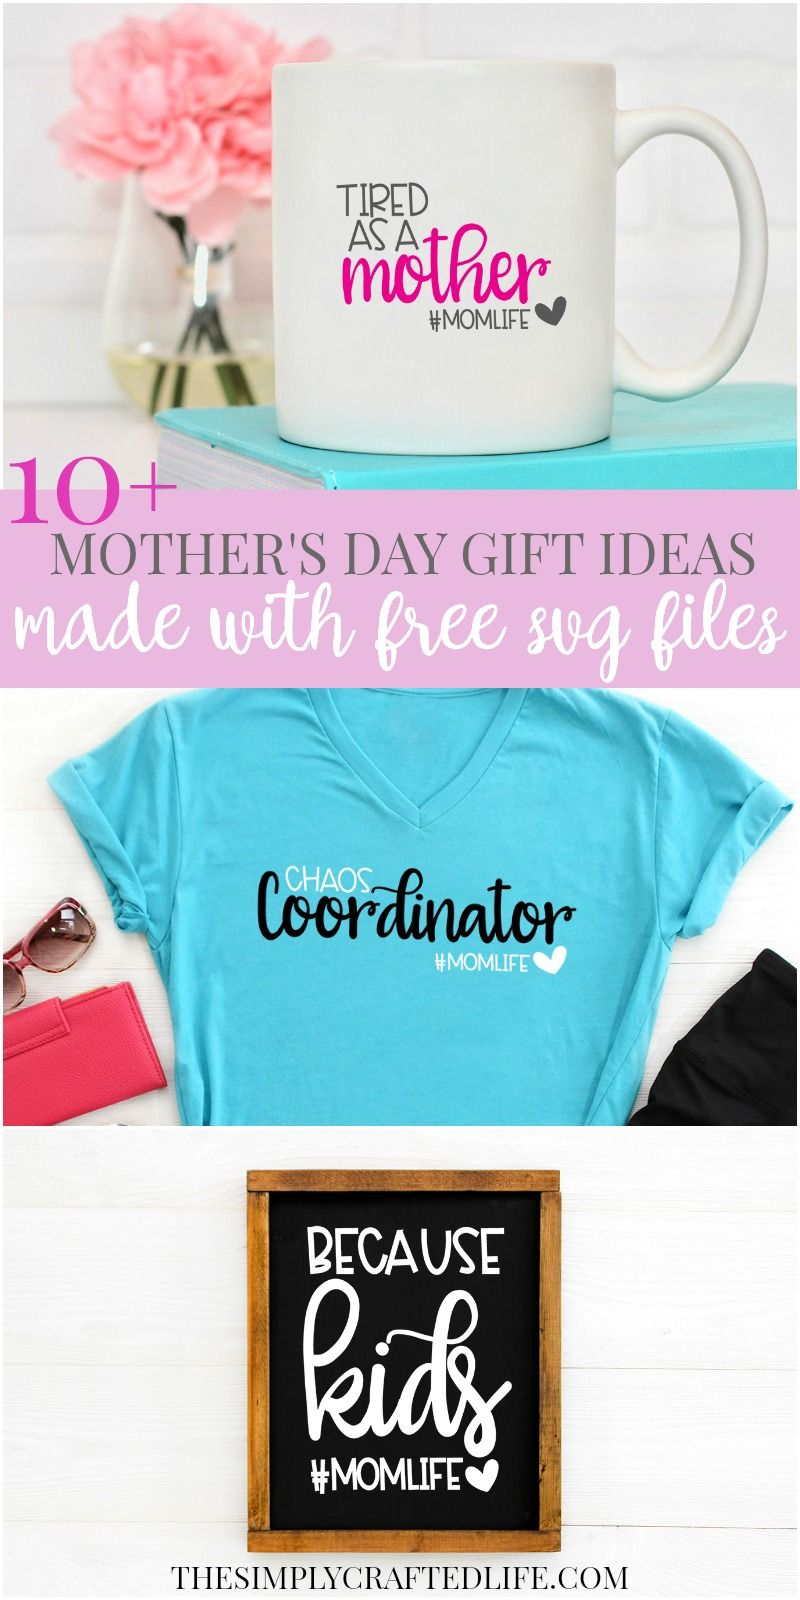 27++ Mothers day cricut gift ideas inspirations